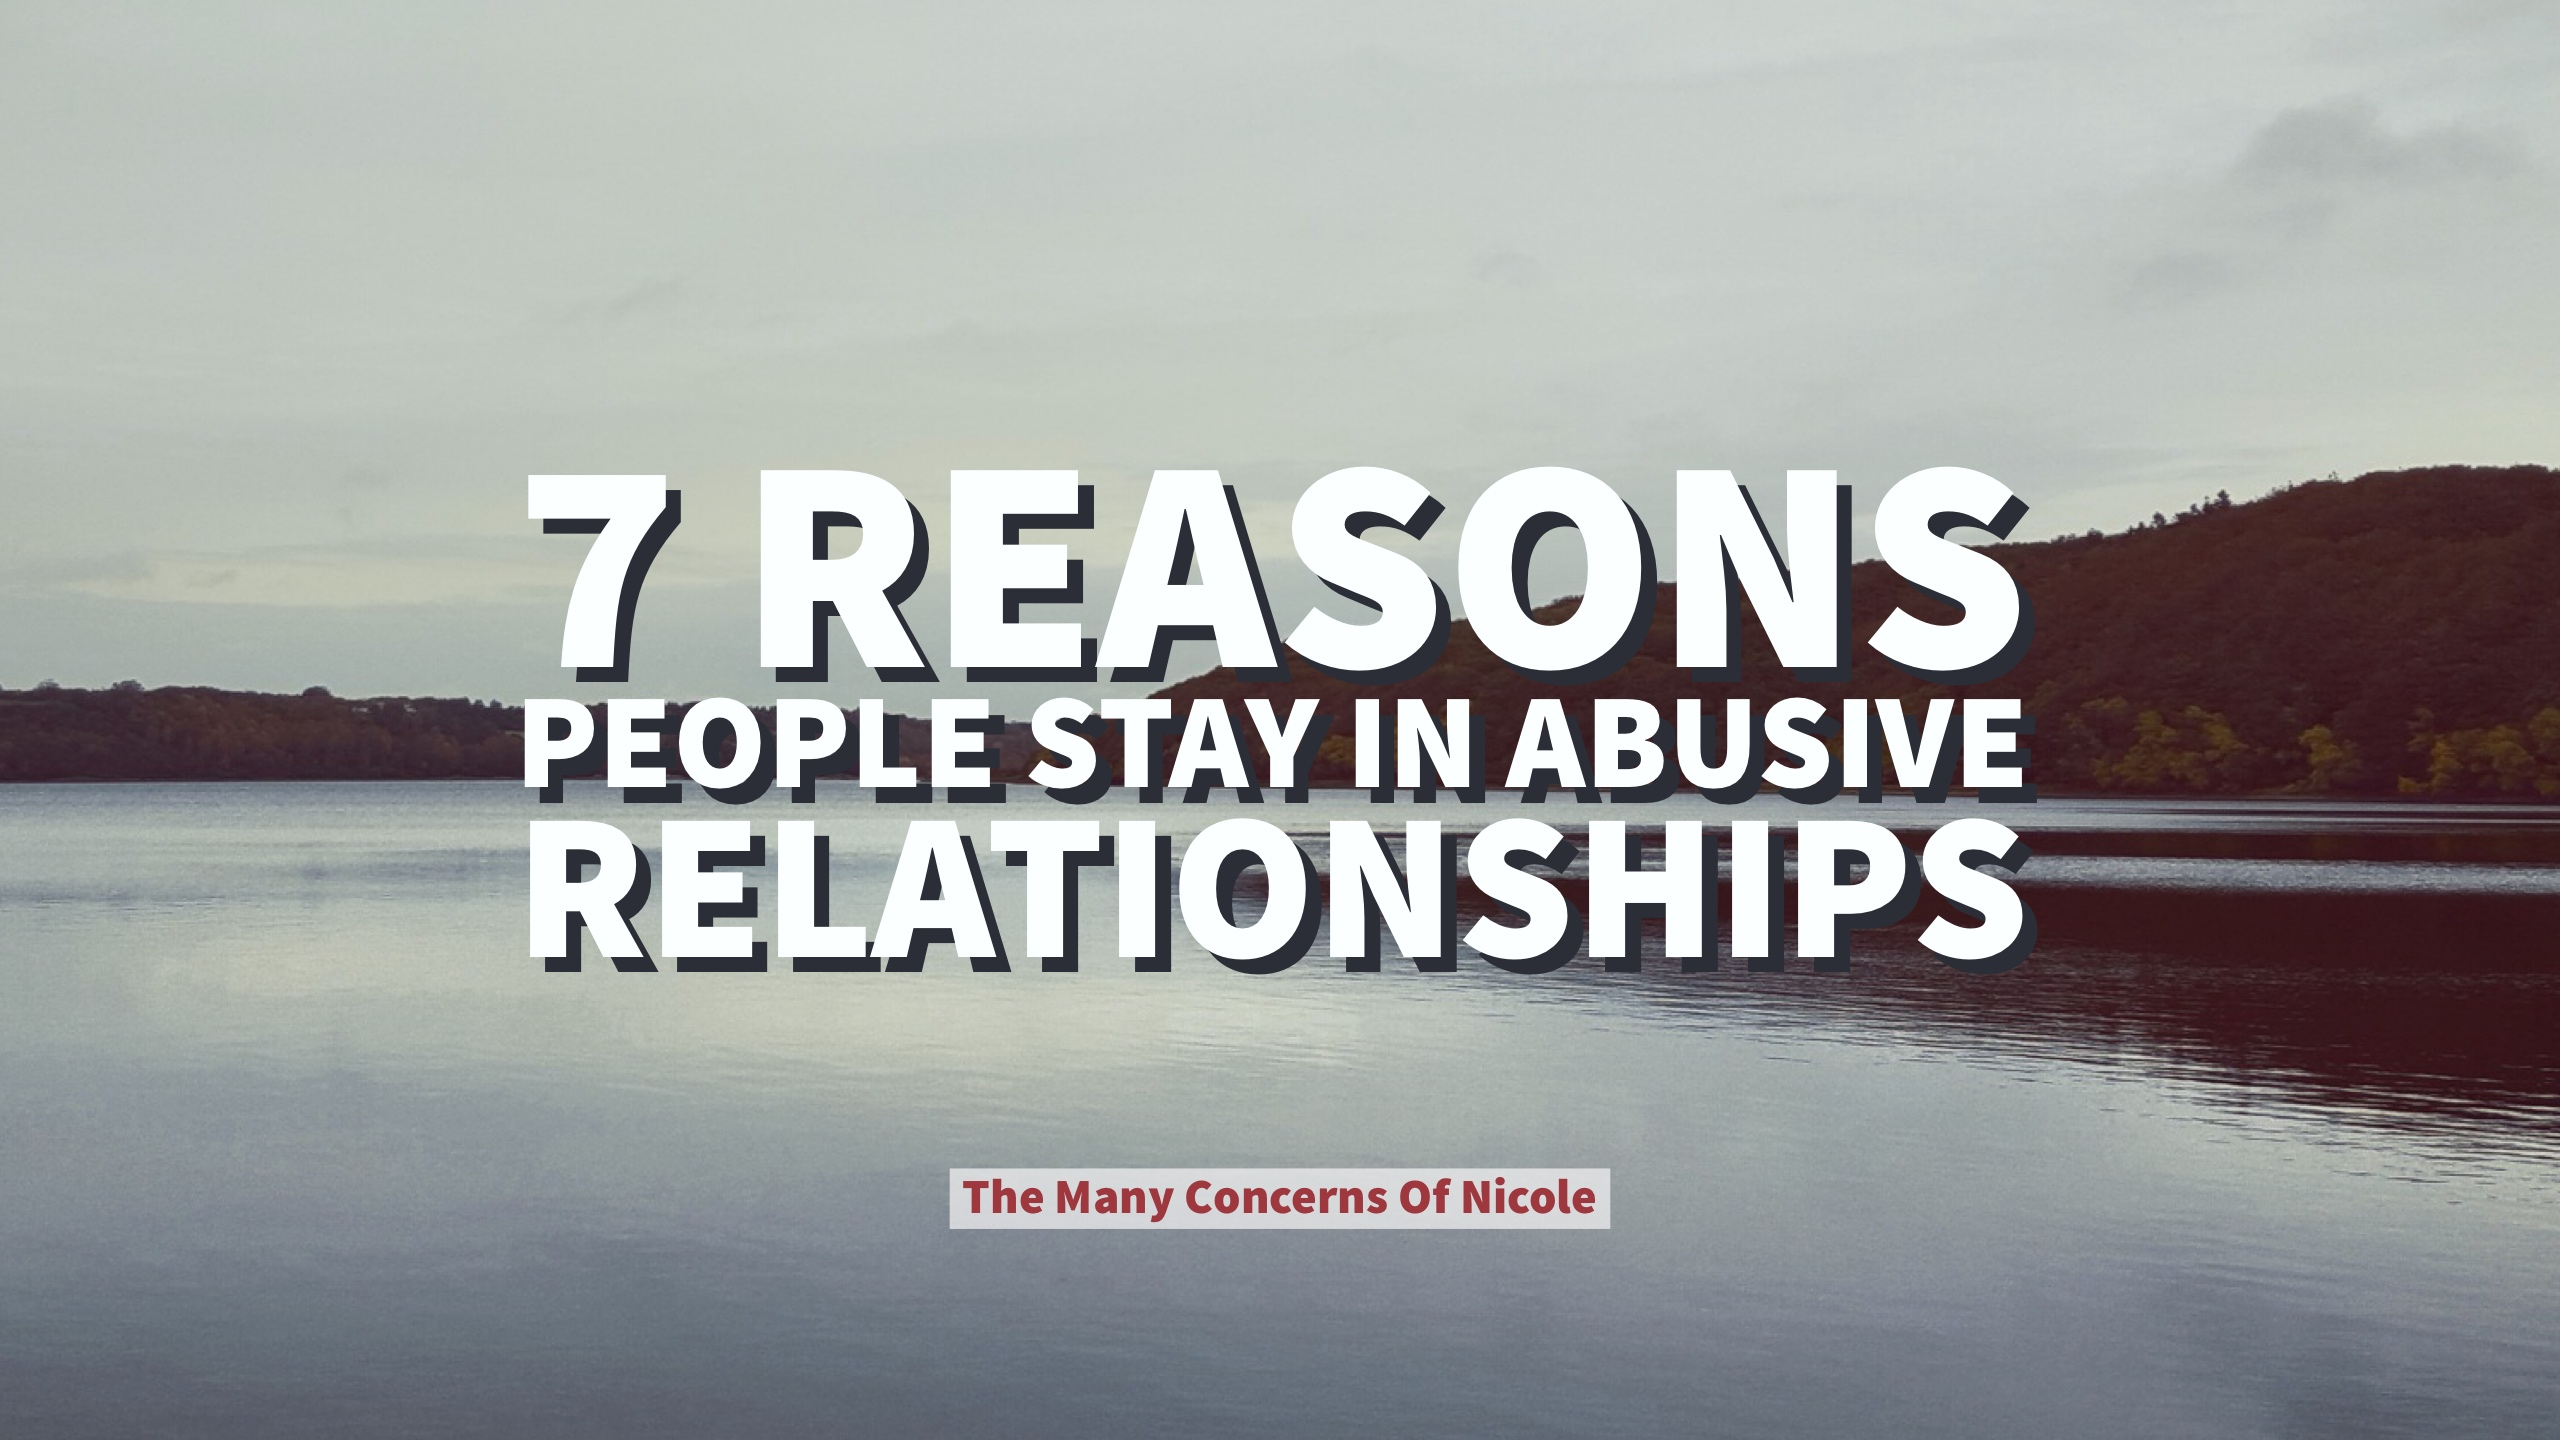 ROSALIE: Why do adults stay in abusive relationships